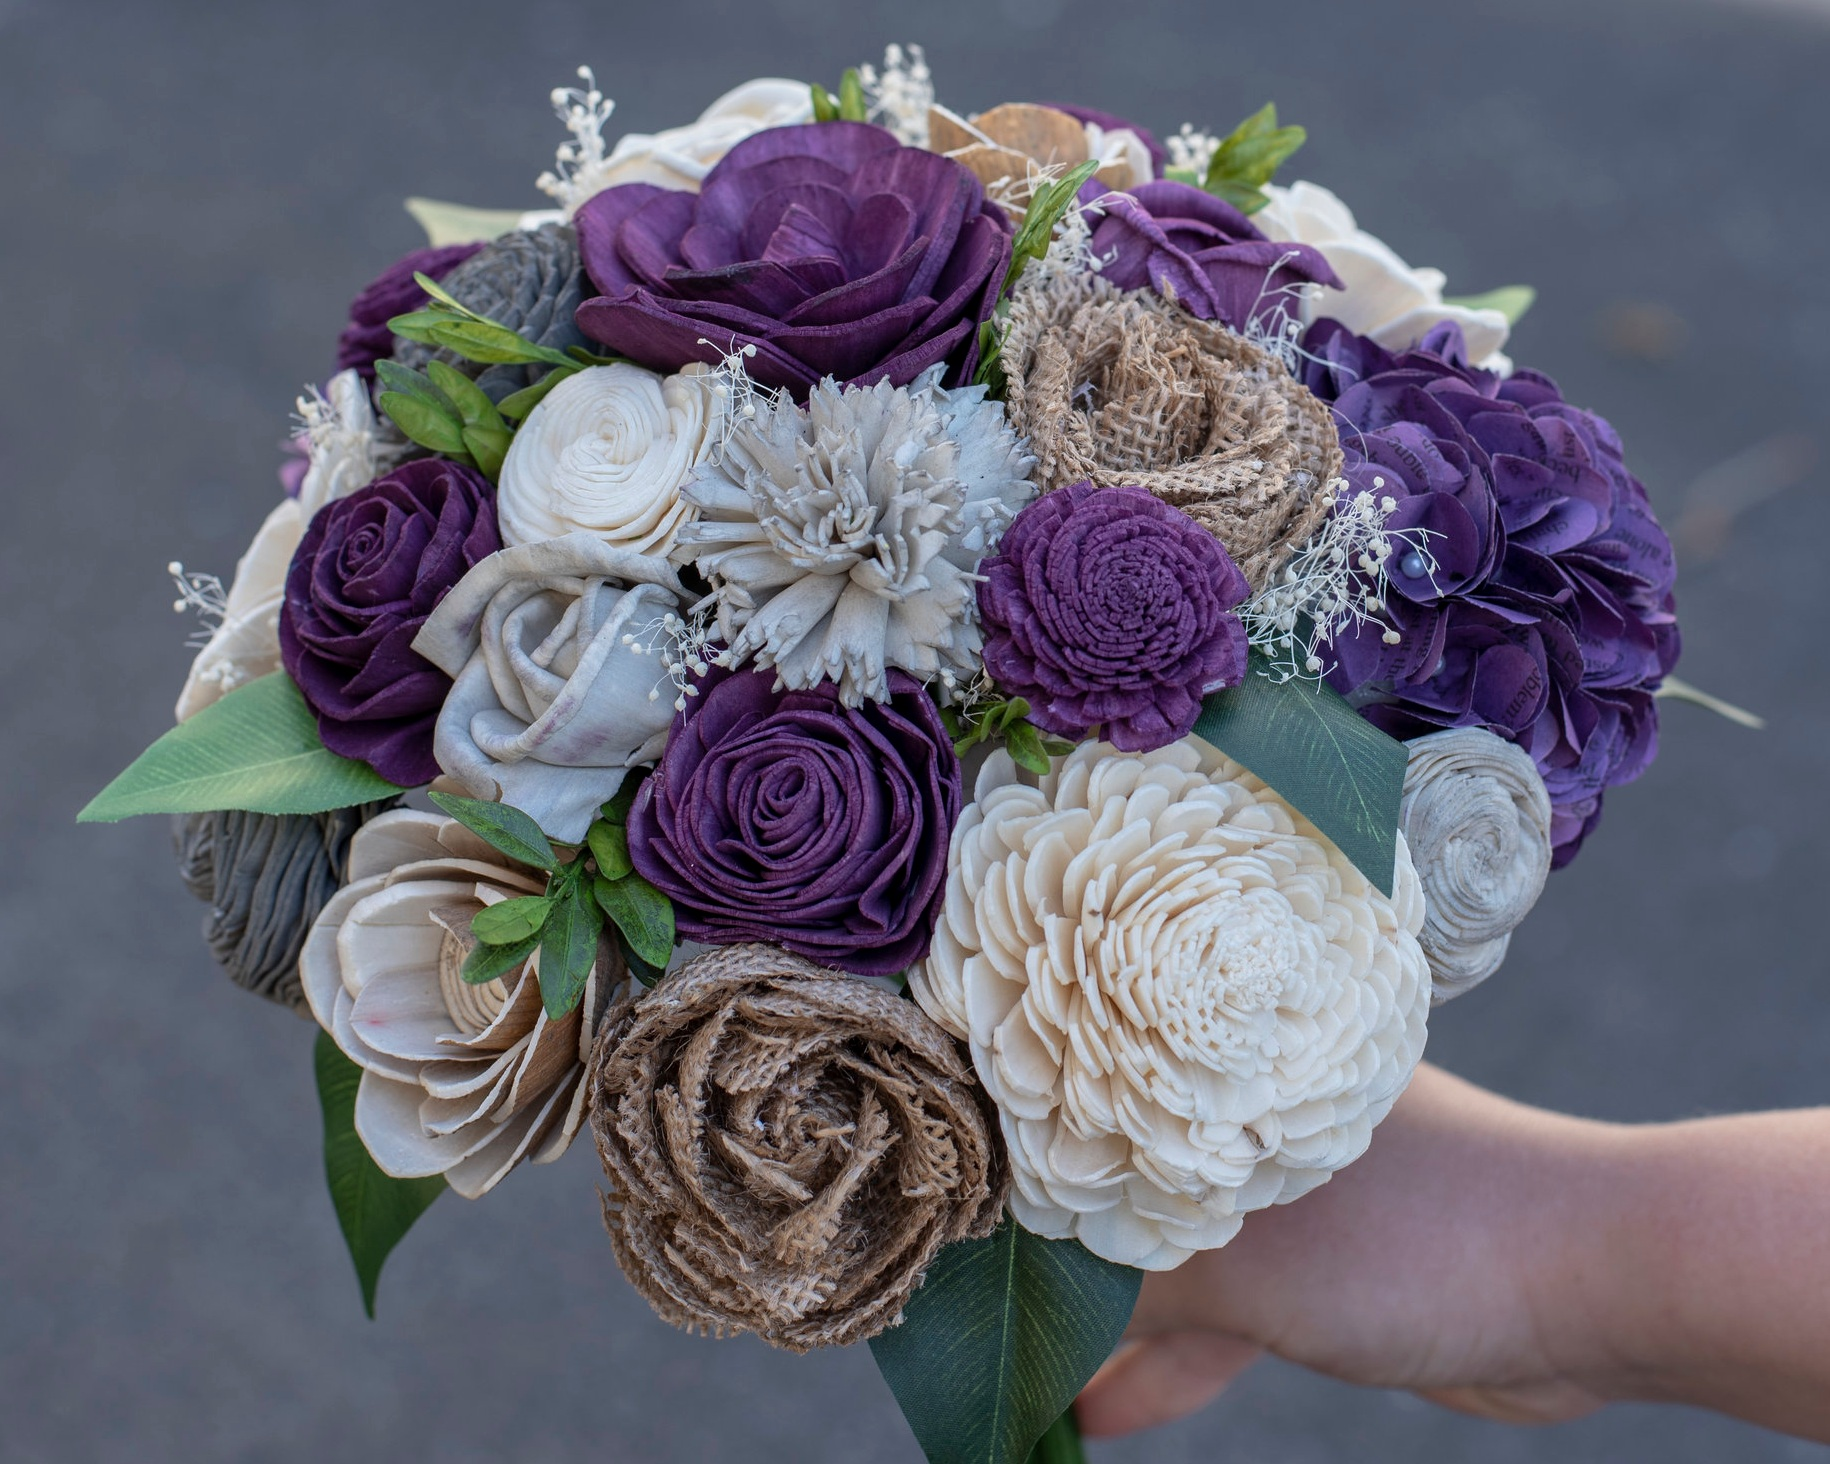 Purple%2C+White+and+Burlap+Bridal+Bouquet-redo+3.jpg